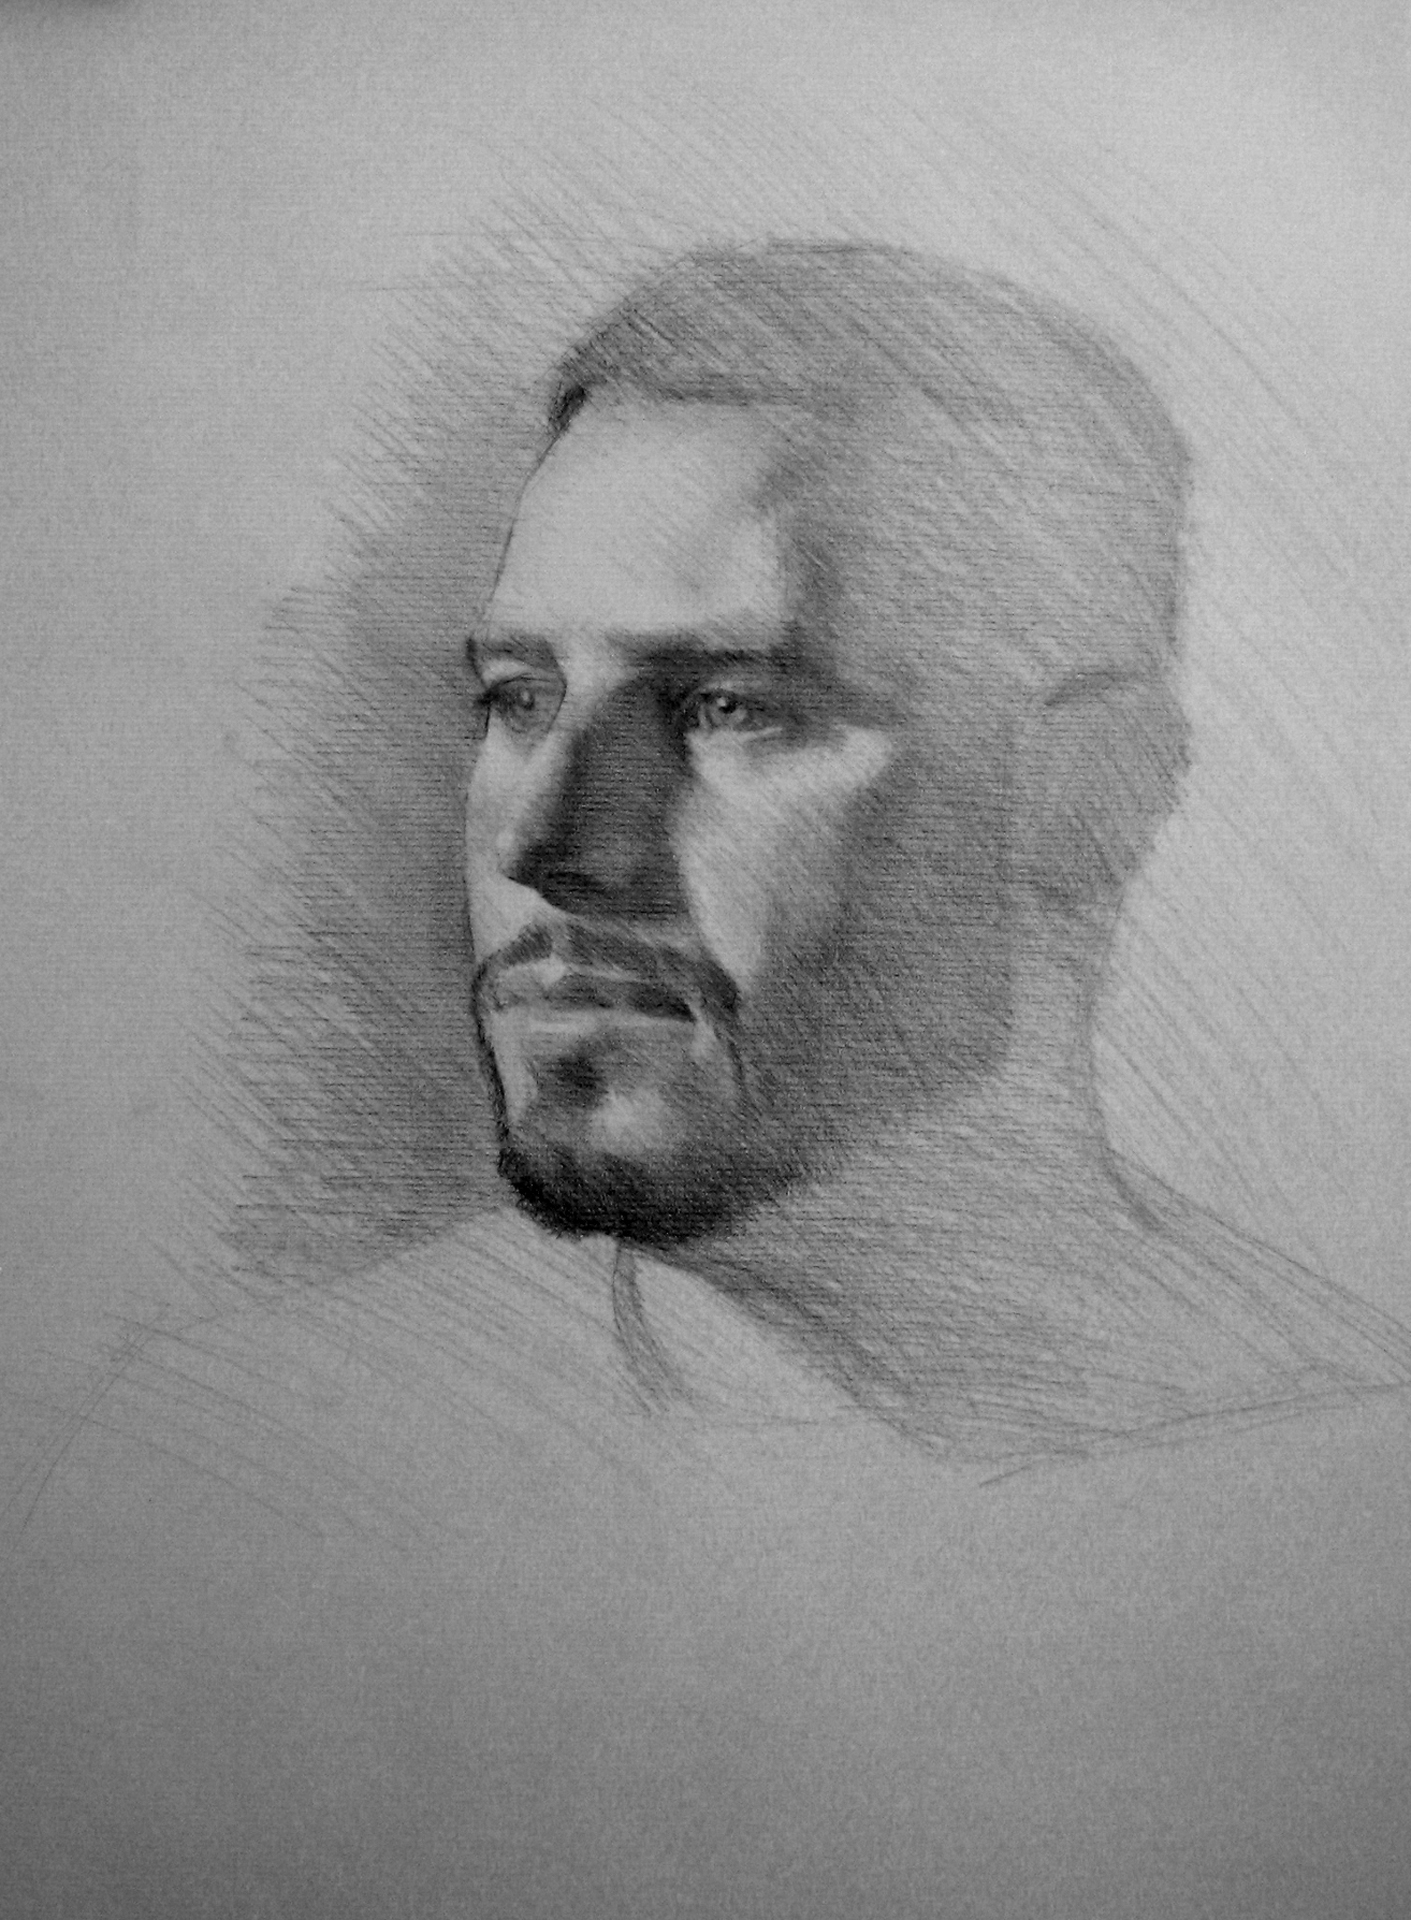 portrait sketch of a man